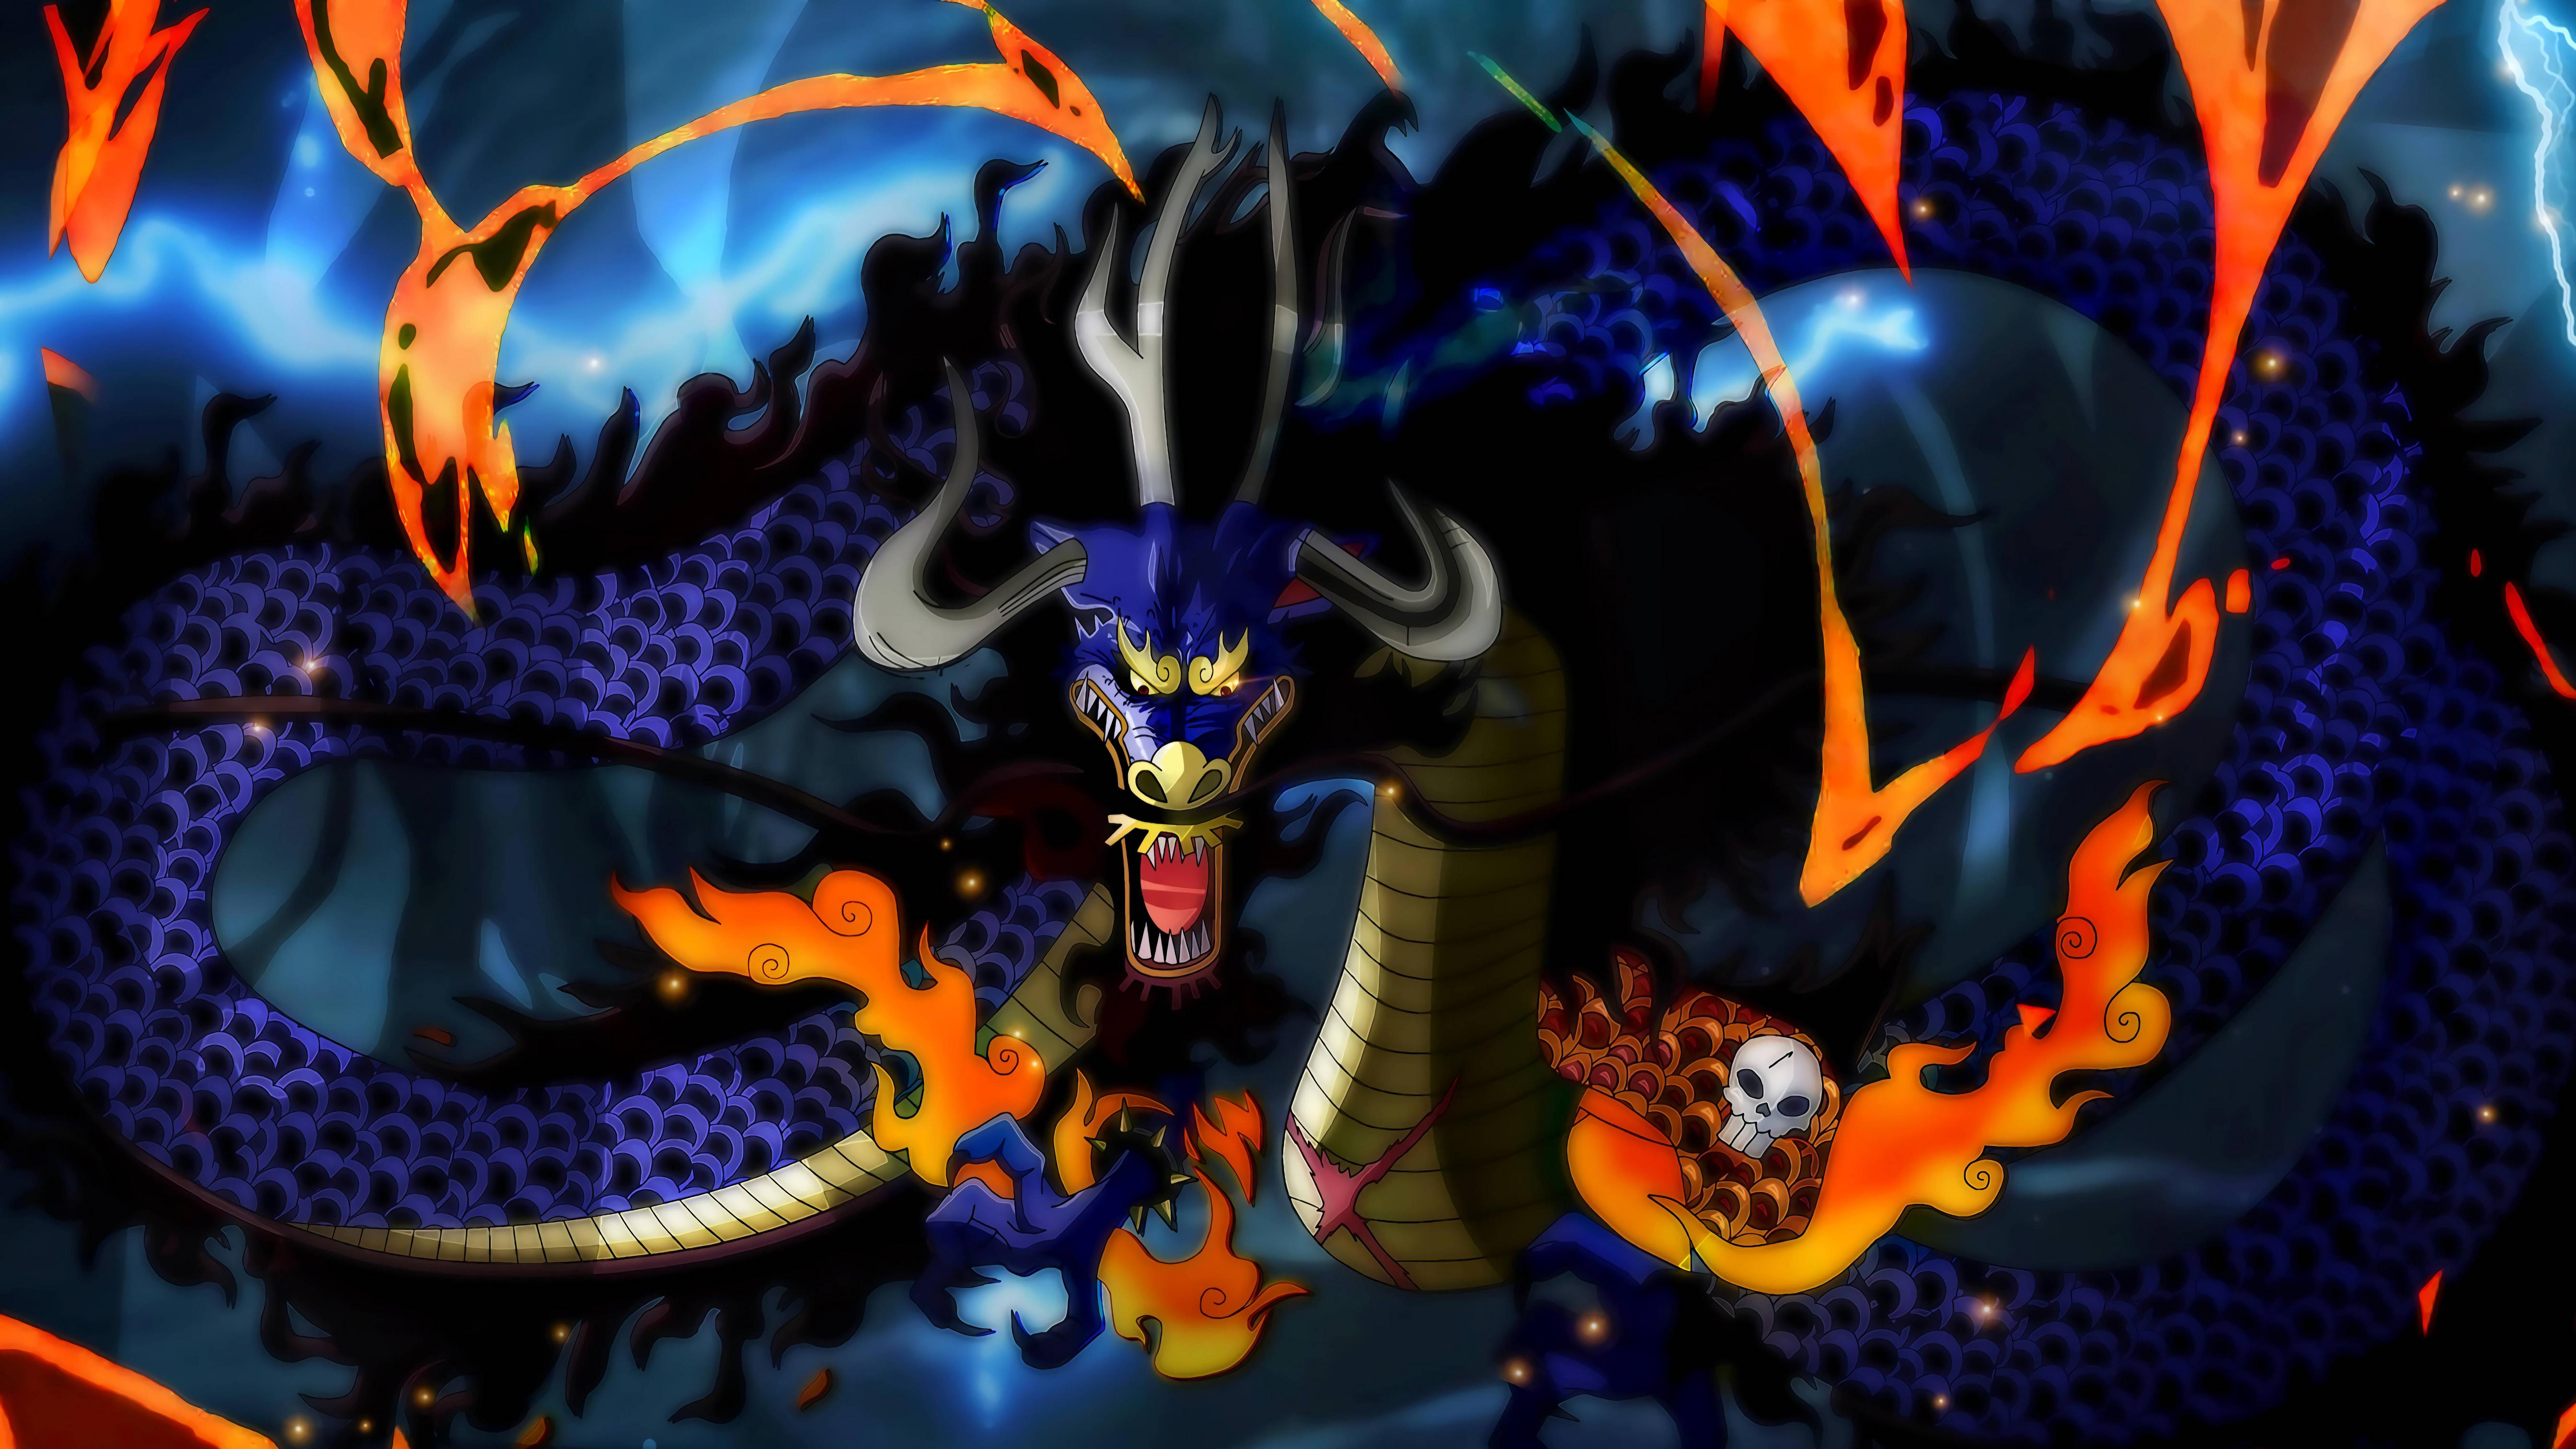 Kaido One Piece Wallpapers Top Free Kaido One Piece Backgrounds Wallpaperaccess